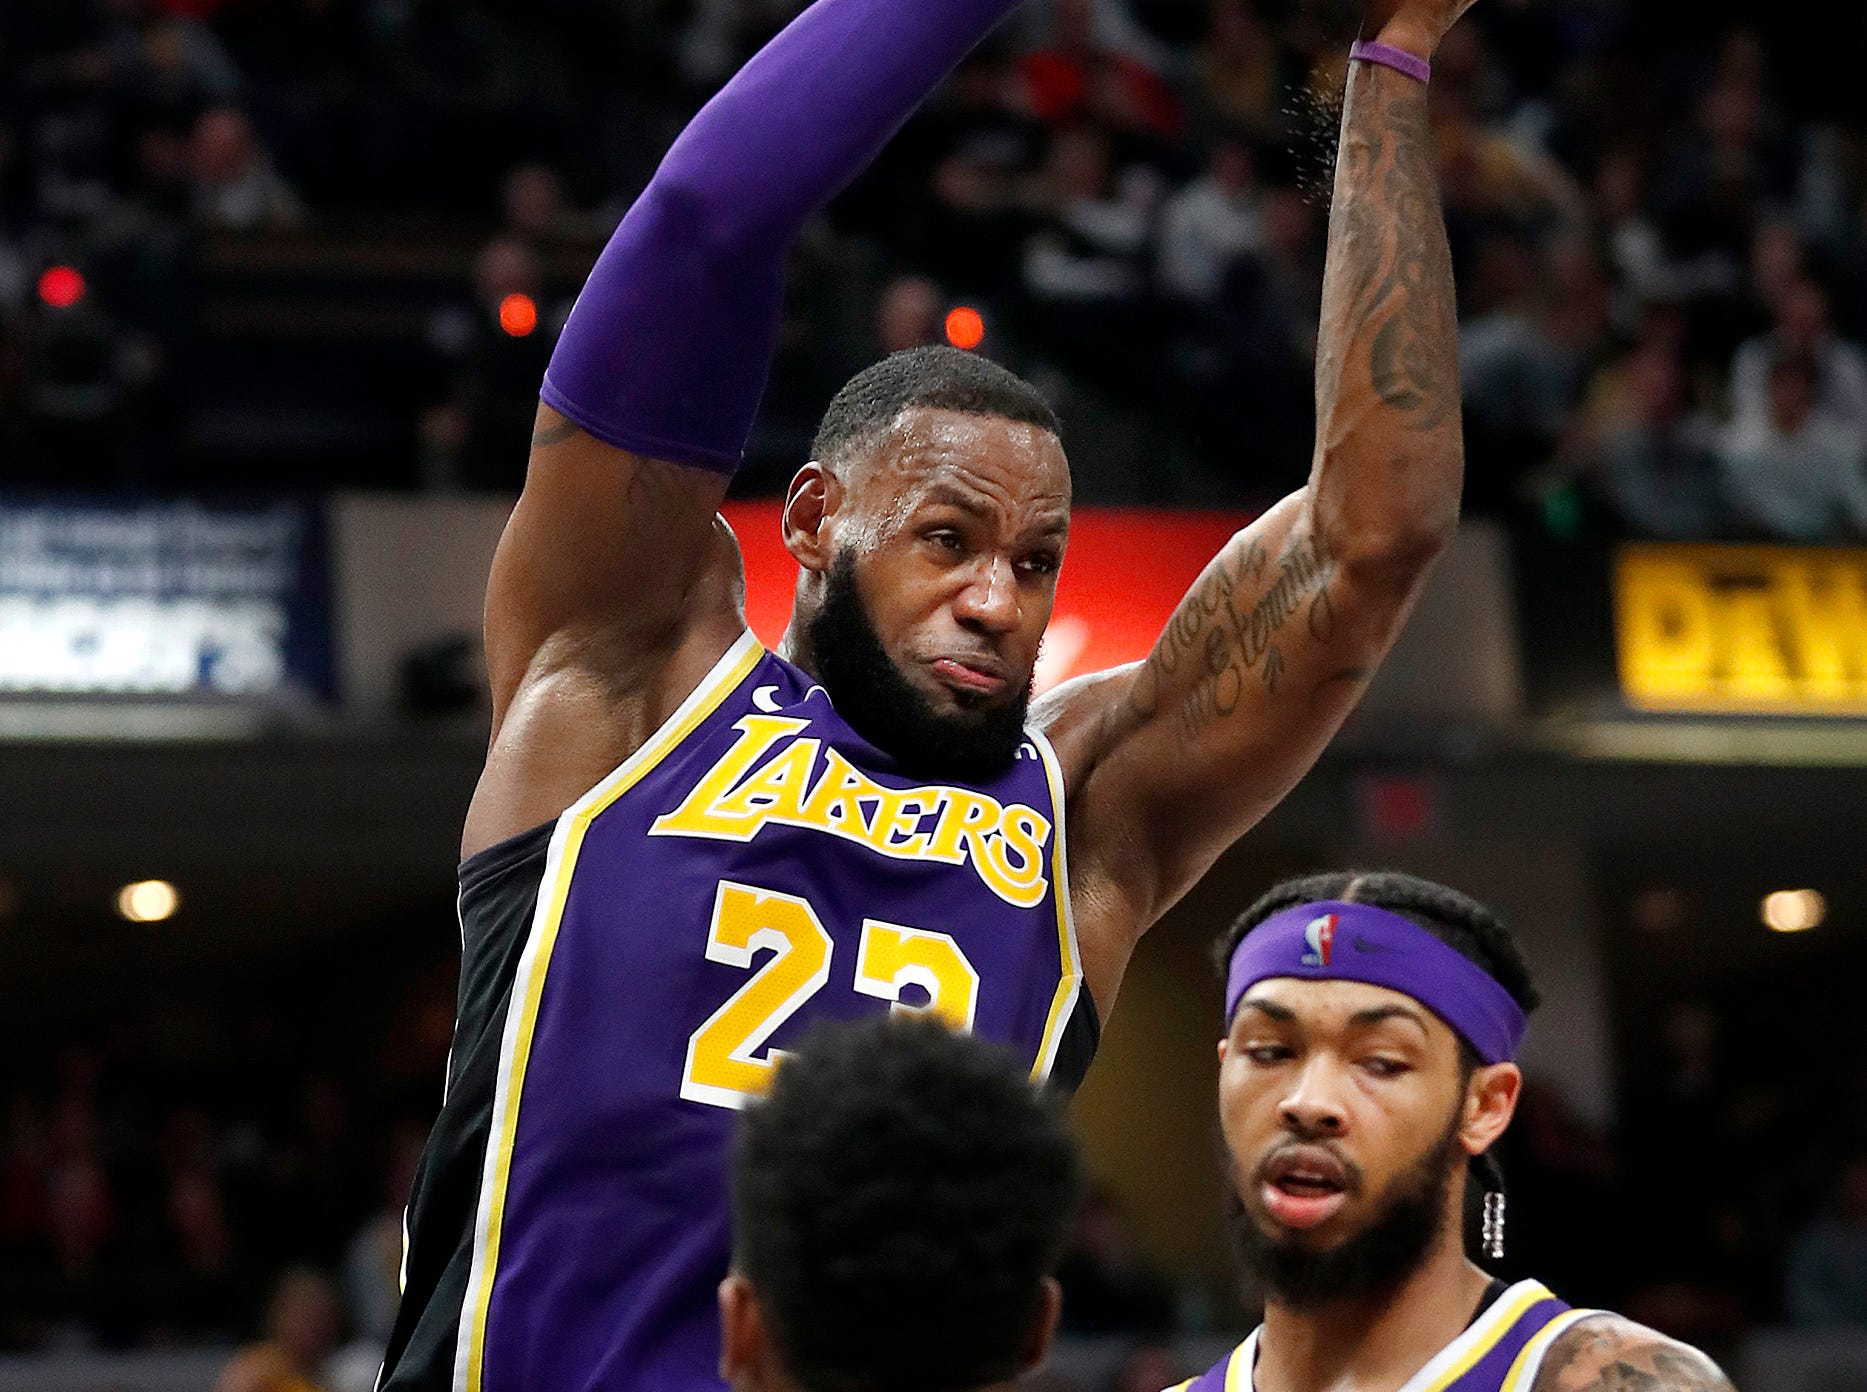 Los Angeles Lakers forward LeBron James (23) pulls down a rebound over Indiana Pacers forward Thaddeus Young (21) in the second half of their game at Bankers Life Fieldhouse on Tuesday, Feb. 5, 2019.